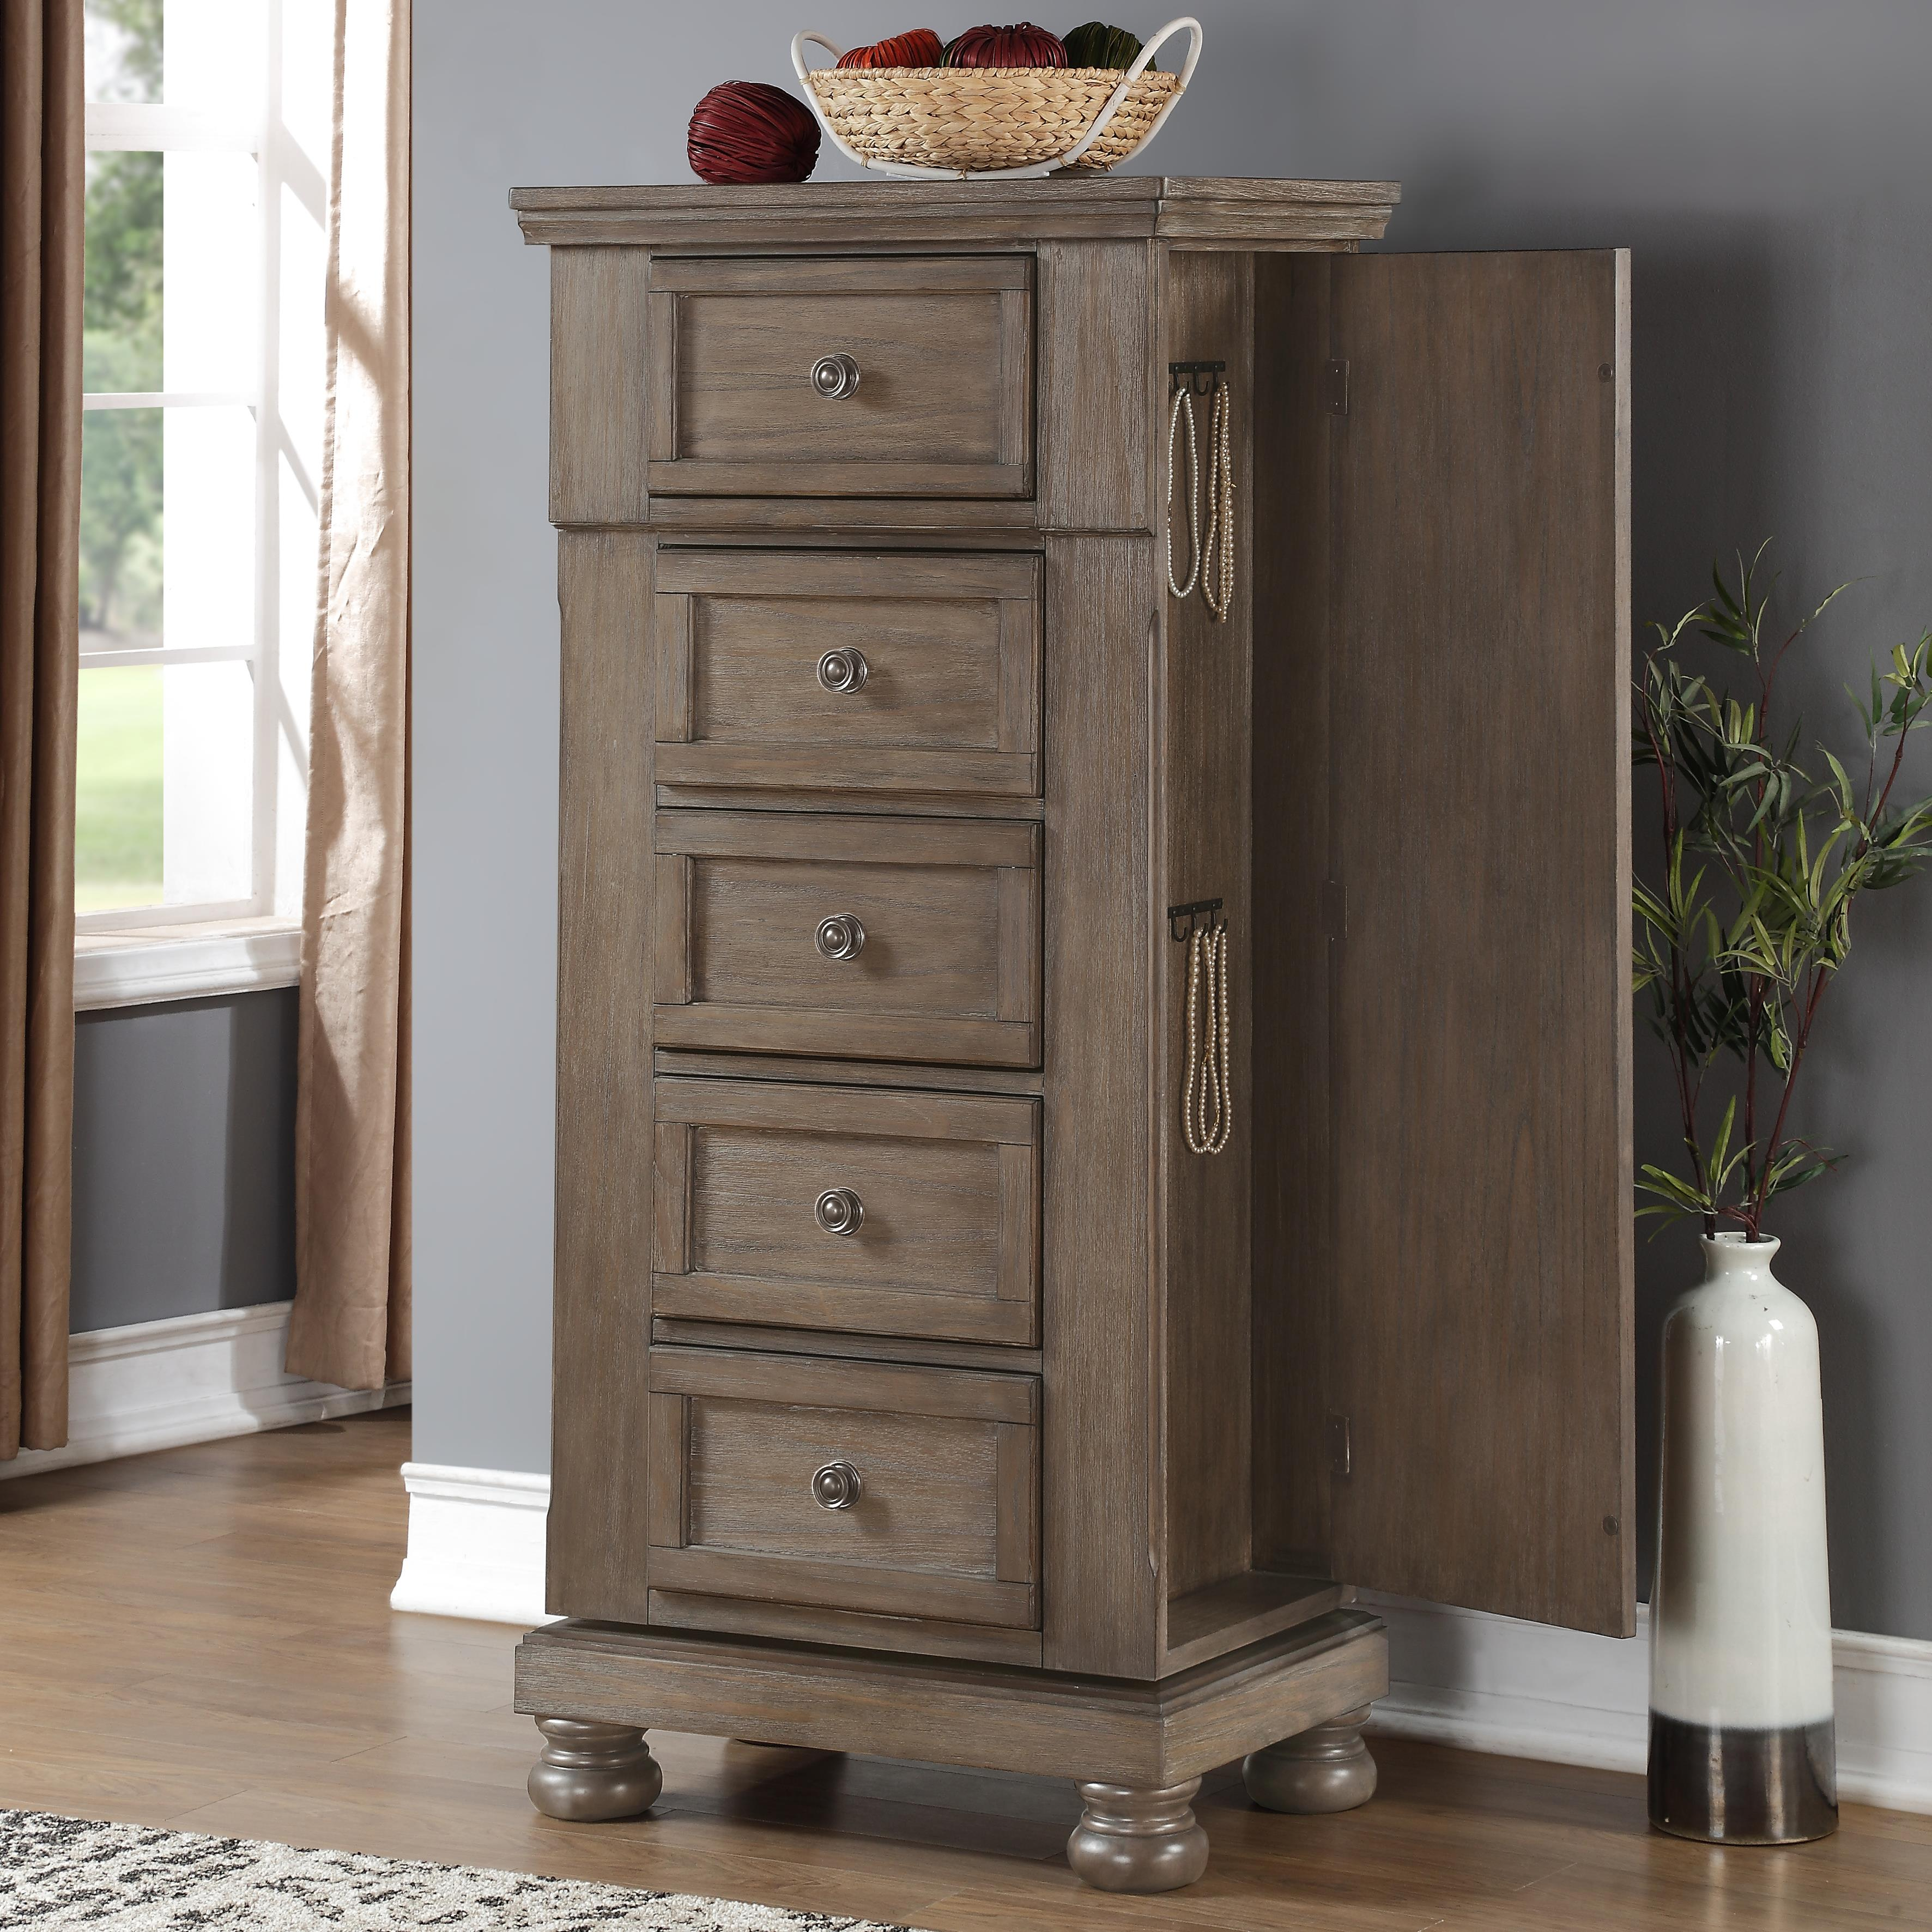 Allegra Swivel Chest by New Classic at H.L. Stephens